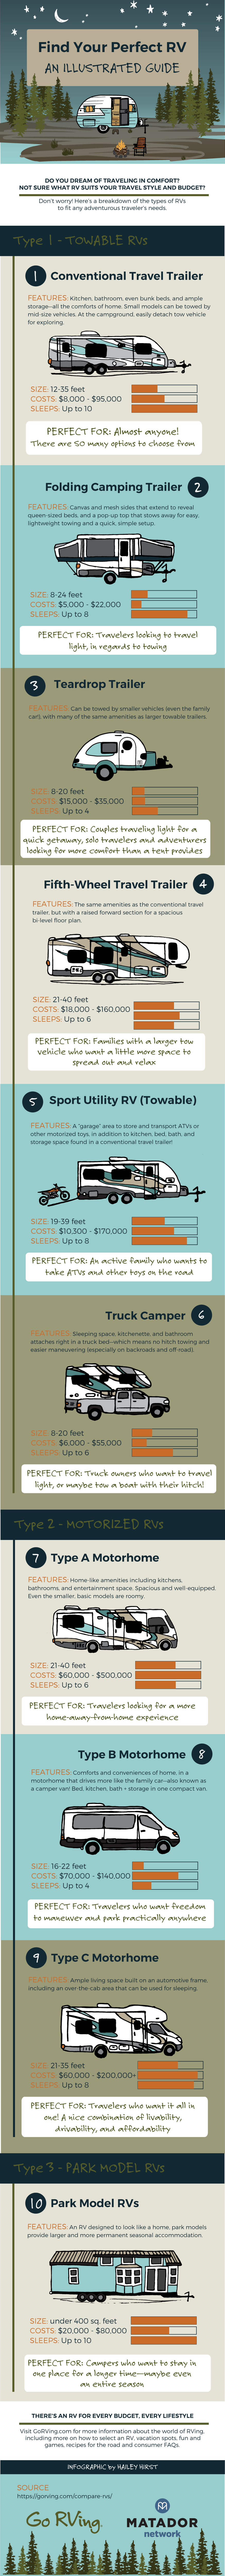 Find your perfect RV - infographic